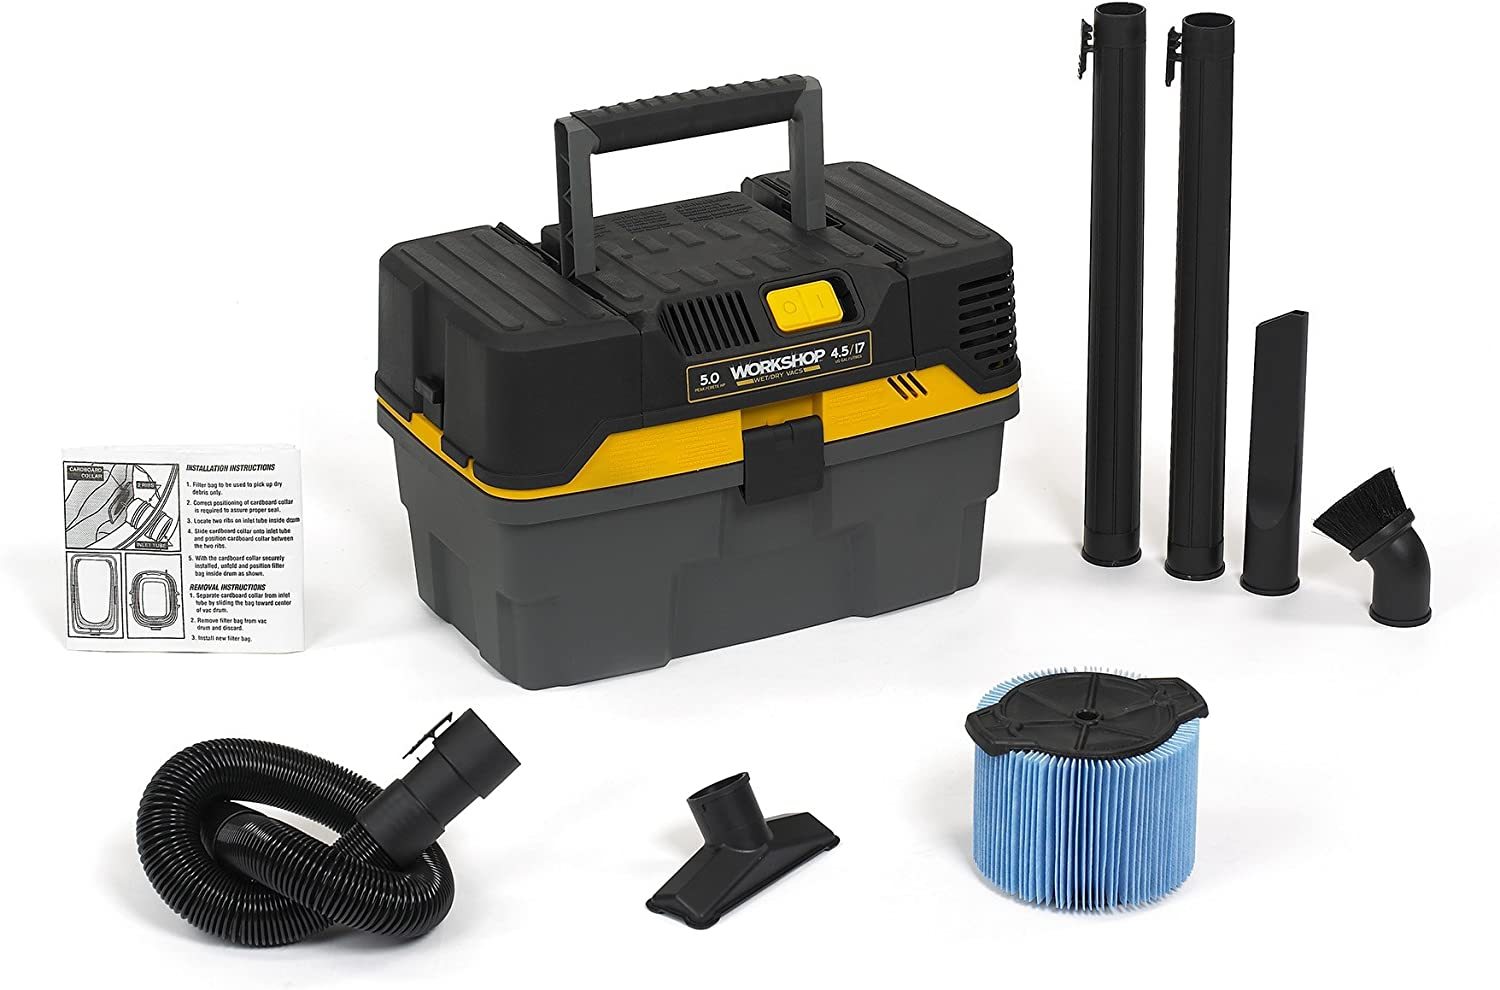 WORKSHOP Wet Dry Vac WS0450VA Compact and Portable Wet Dry Vacuum Cleaner for Cars and Contractors, 4.5-Gallon Wet Dry Auto Vacuum Cleaner, 5.0 Peak HP Shop Vacuum Cleaner